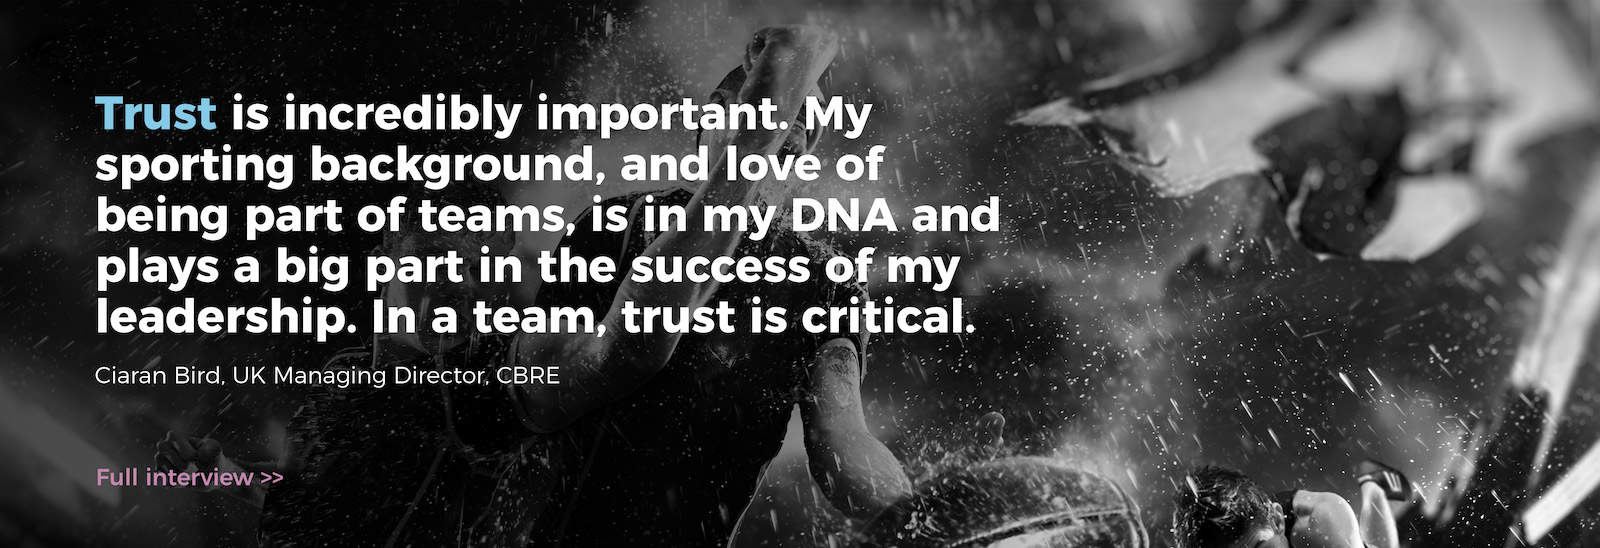 Trust is incredibly important. My sporting background, and love of being part of teams, is in my DNA and plays a big part in the success of my leadership. In a team, trust is critical. Ciaran Bird, UK Managing Director, CBRE